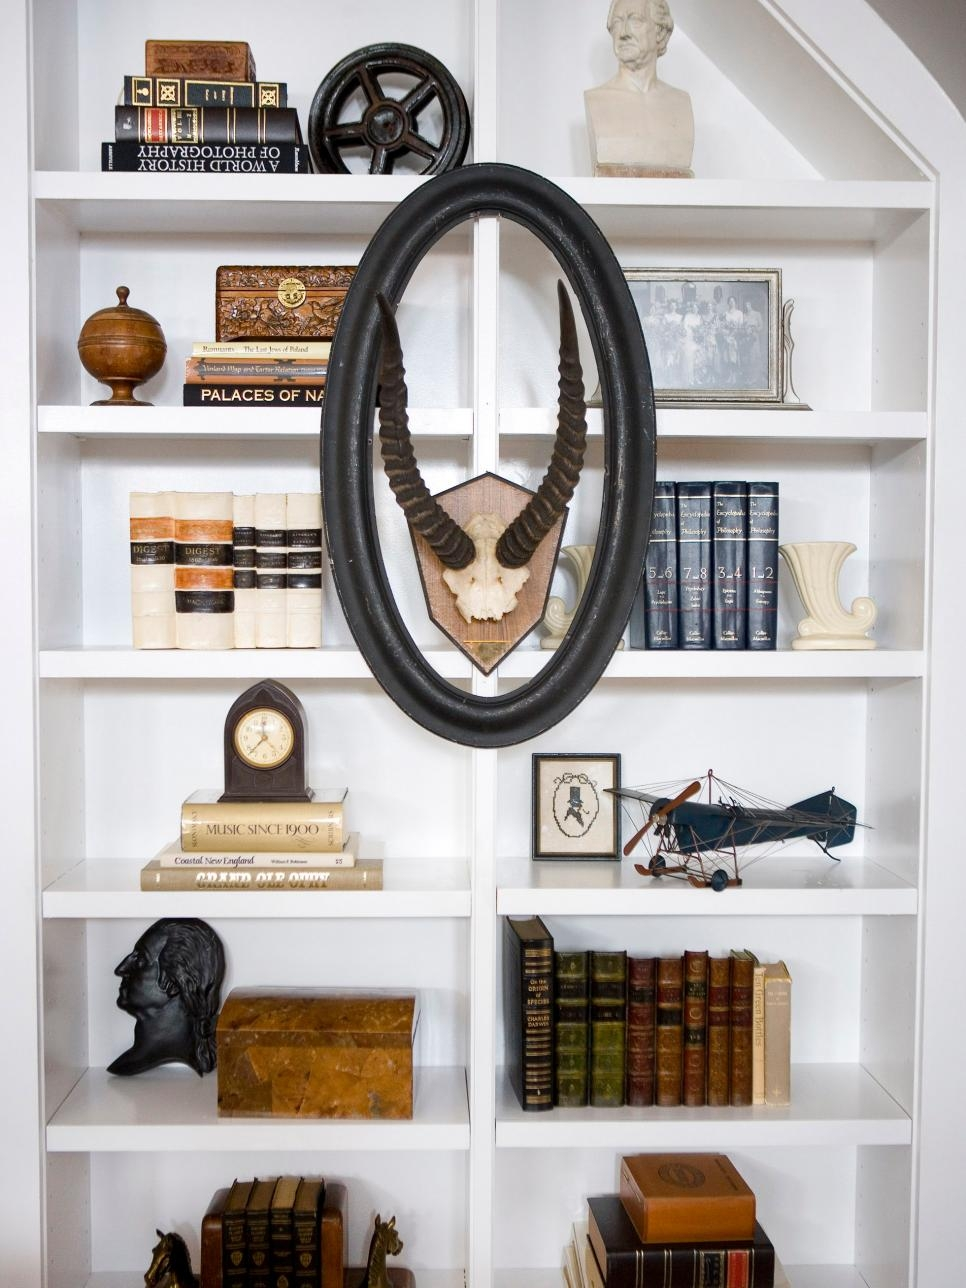 Bookshelf And Wall Shelf Decorating Ideas Hgtv Intended For Bookshelves Designs For Home (View 12 of 15)